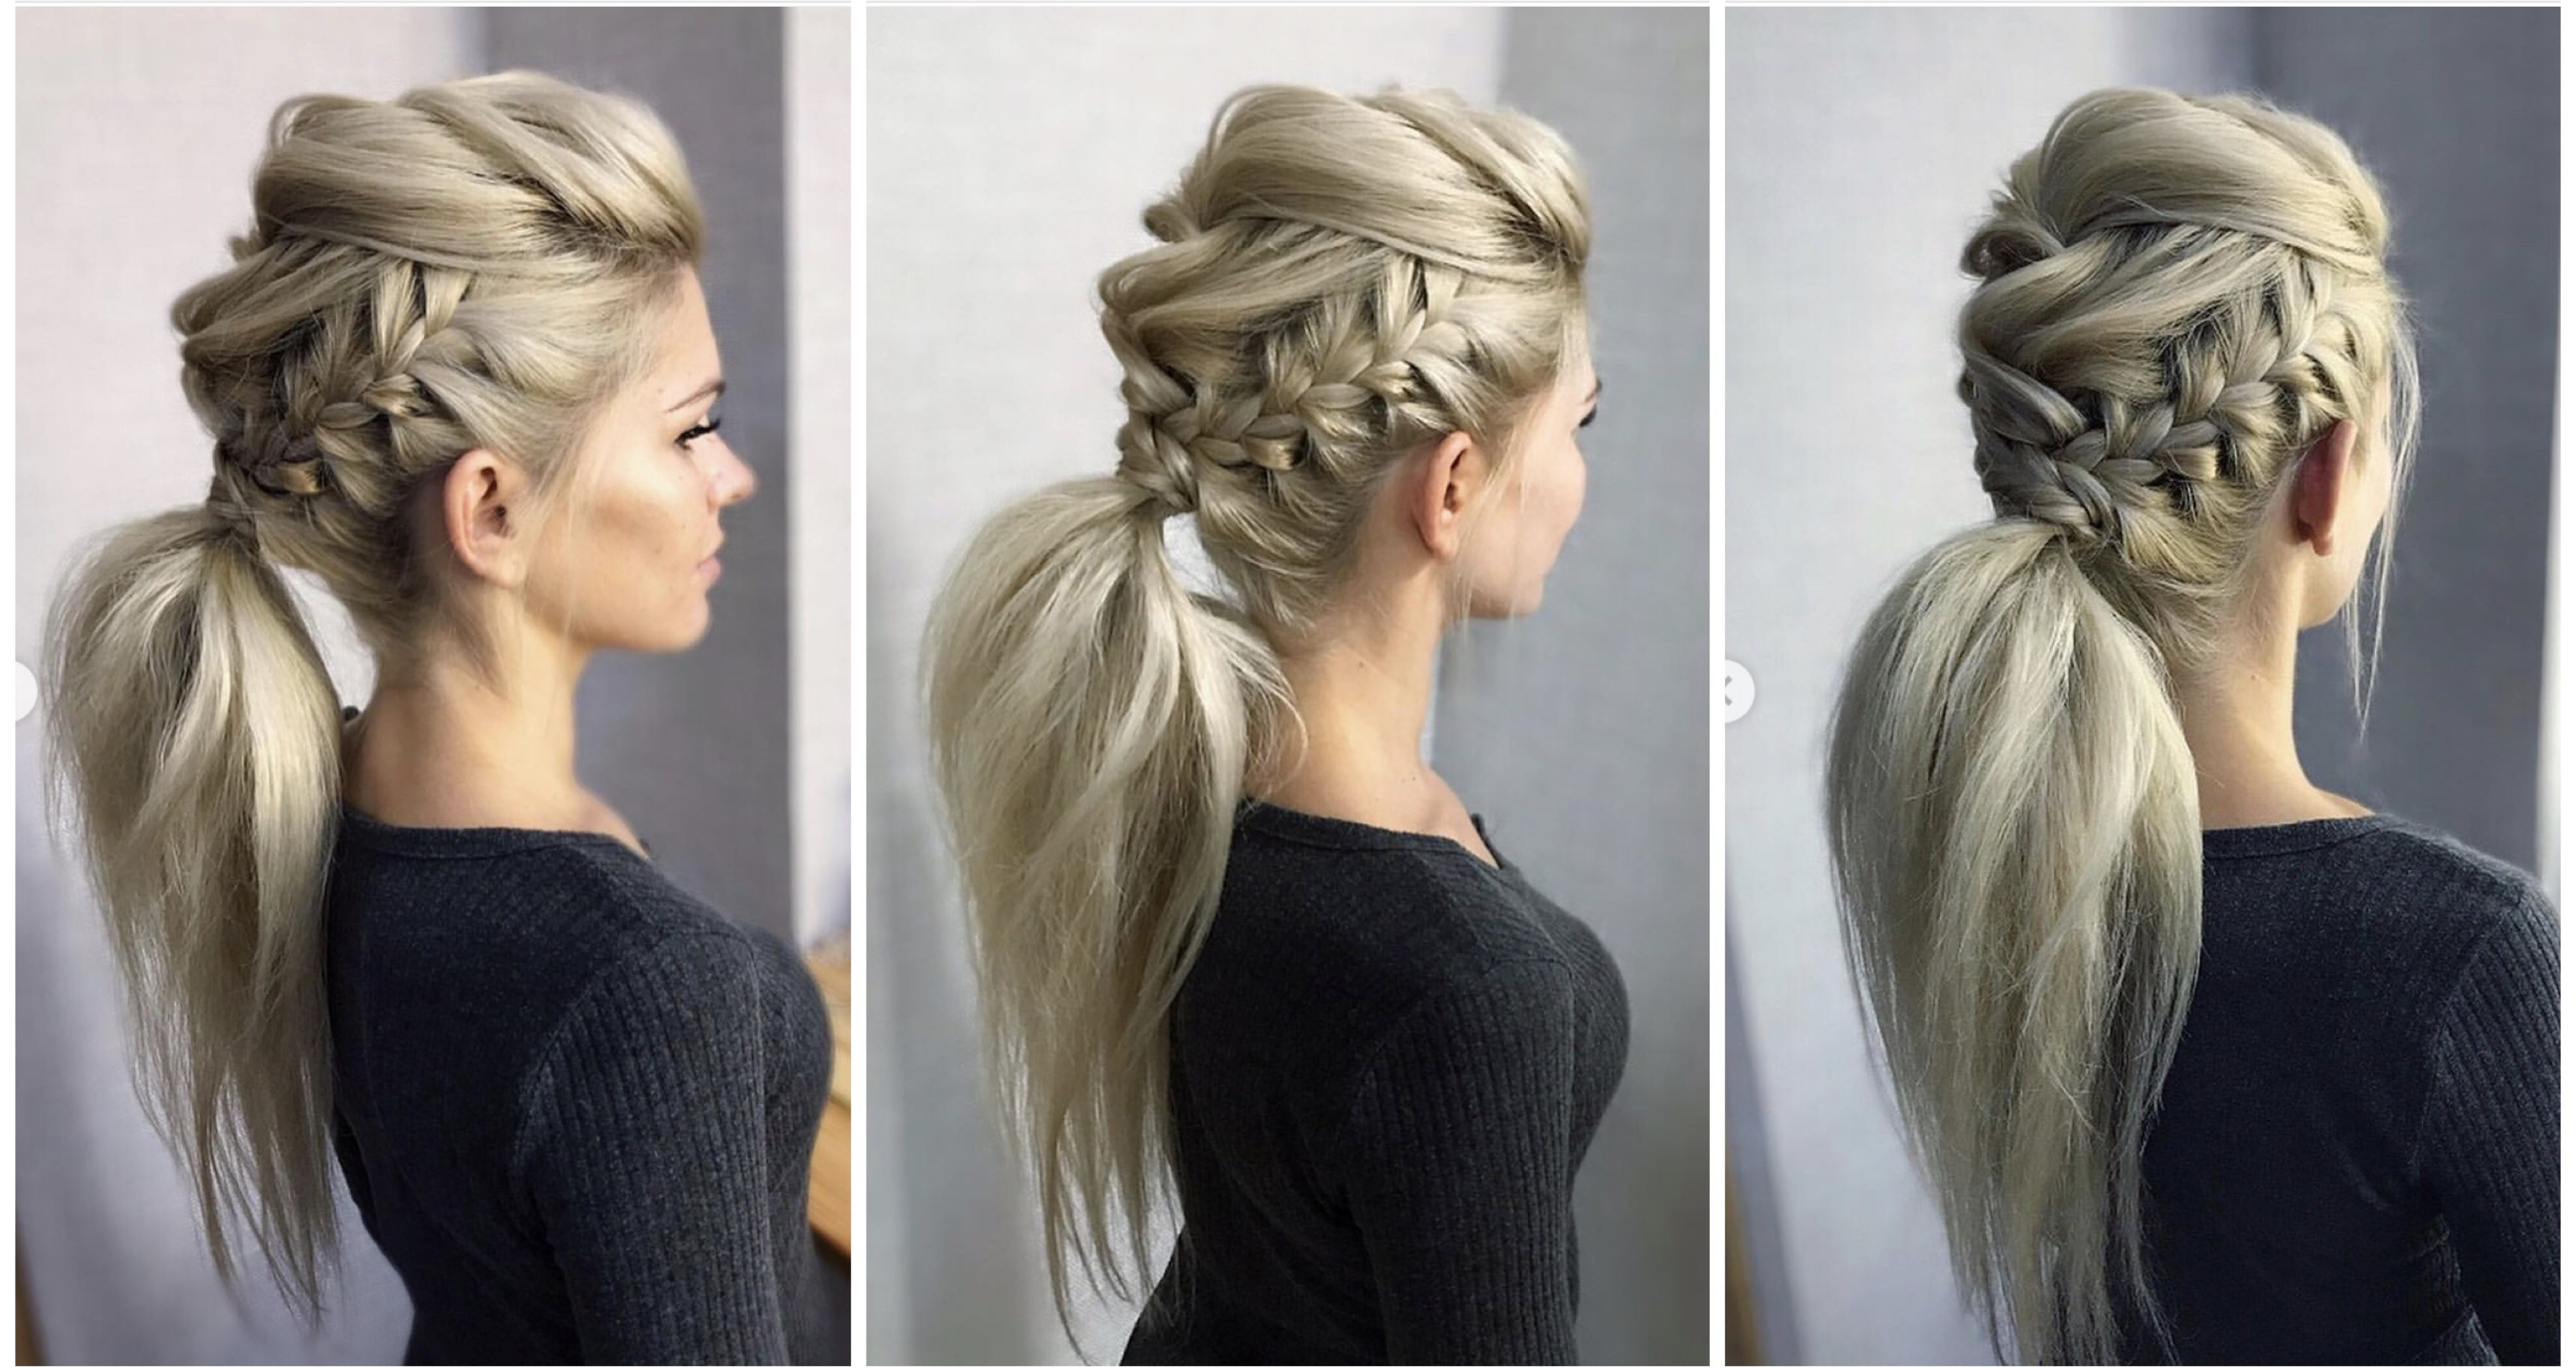 Pin By Caitlin Haaland On Things I Vow To Try Hair Styles Long Hair Styles Hairstyle